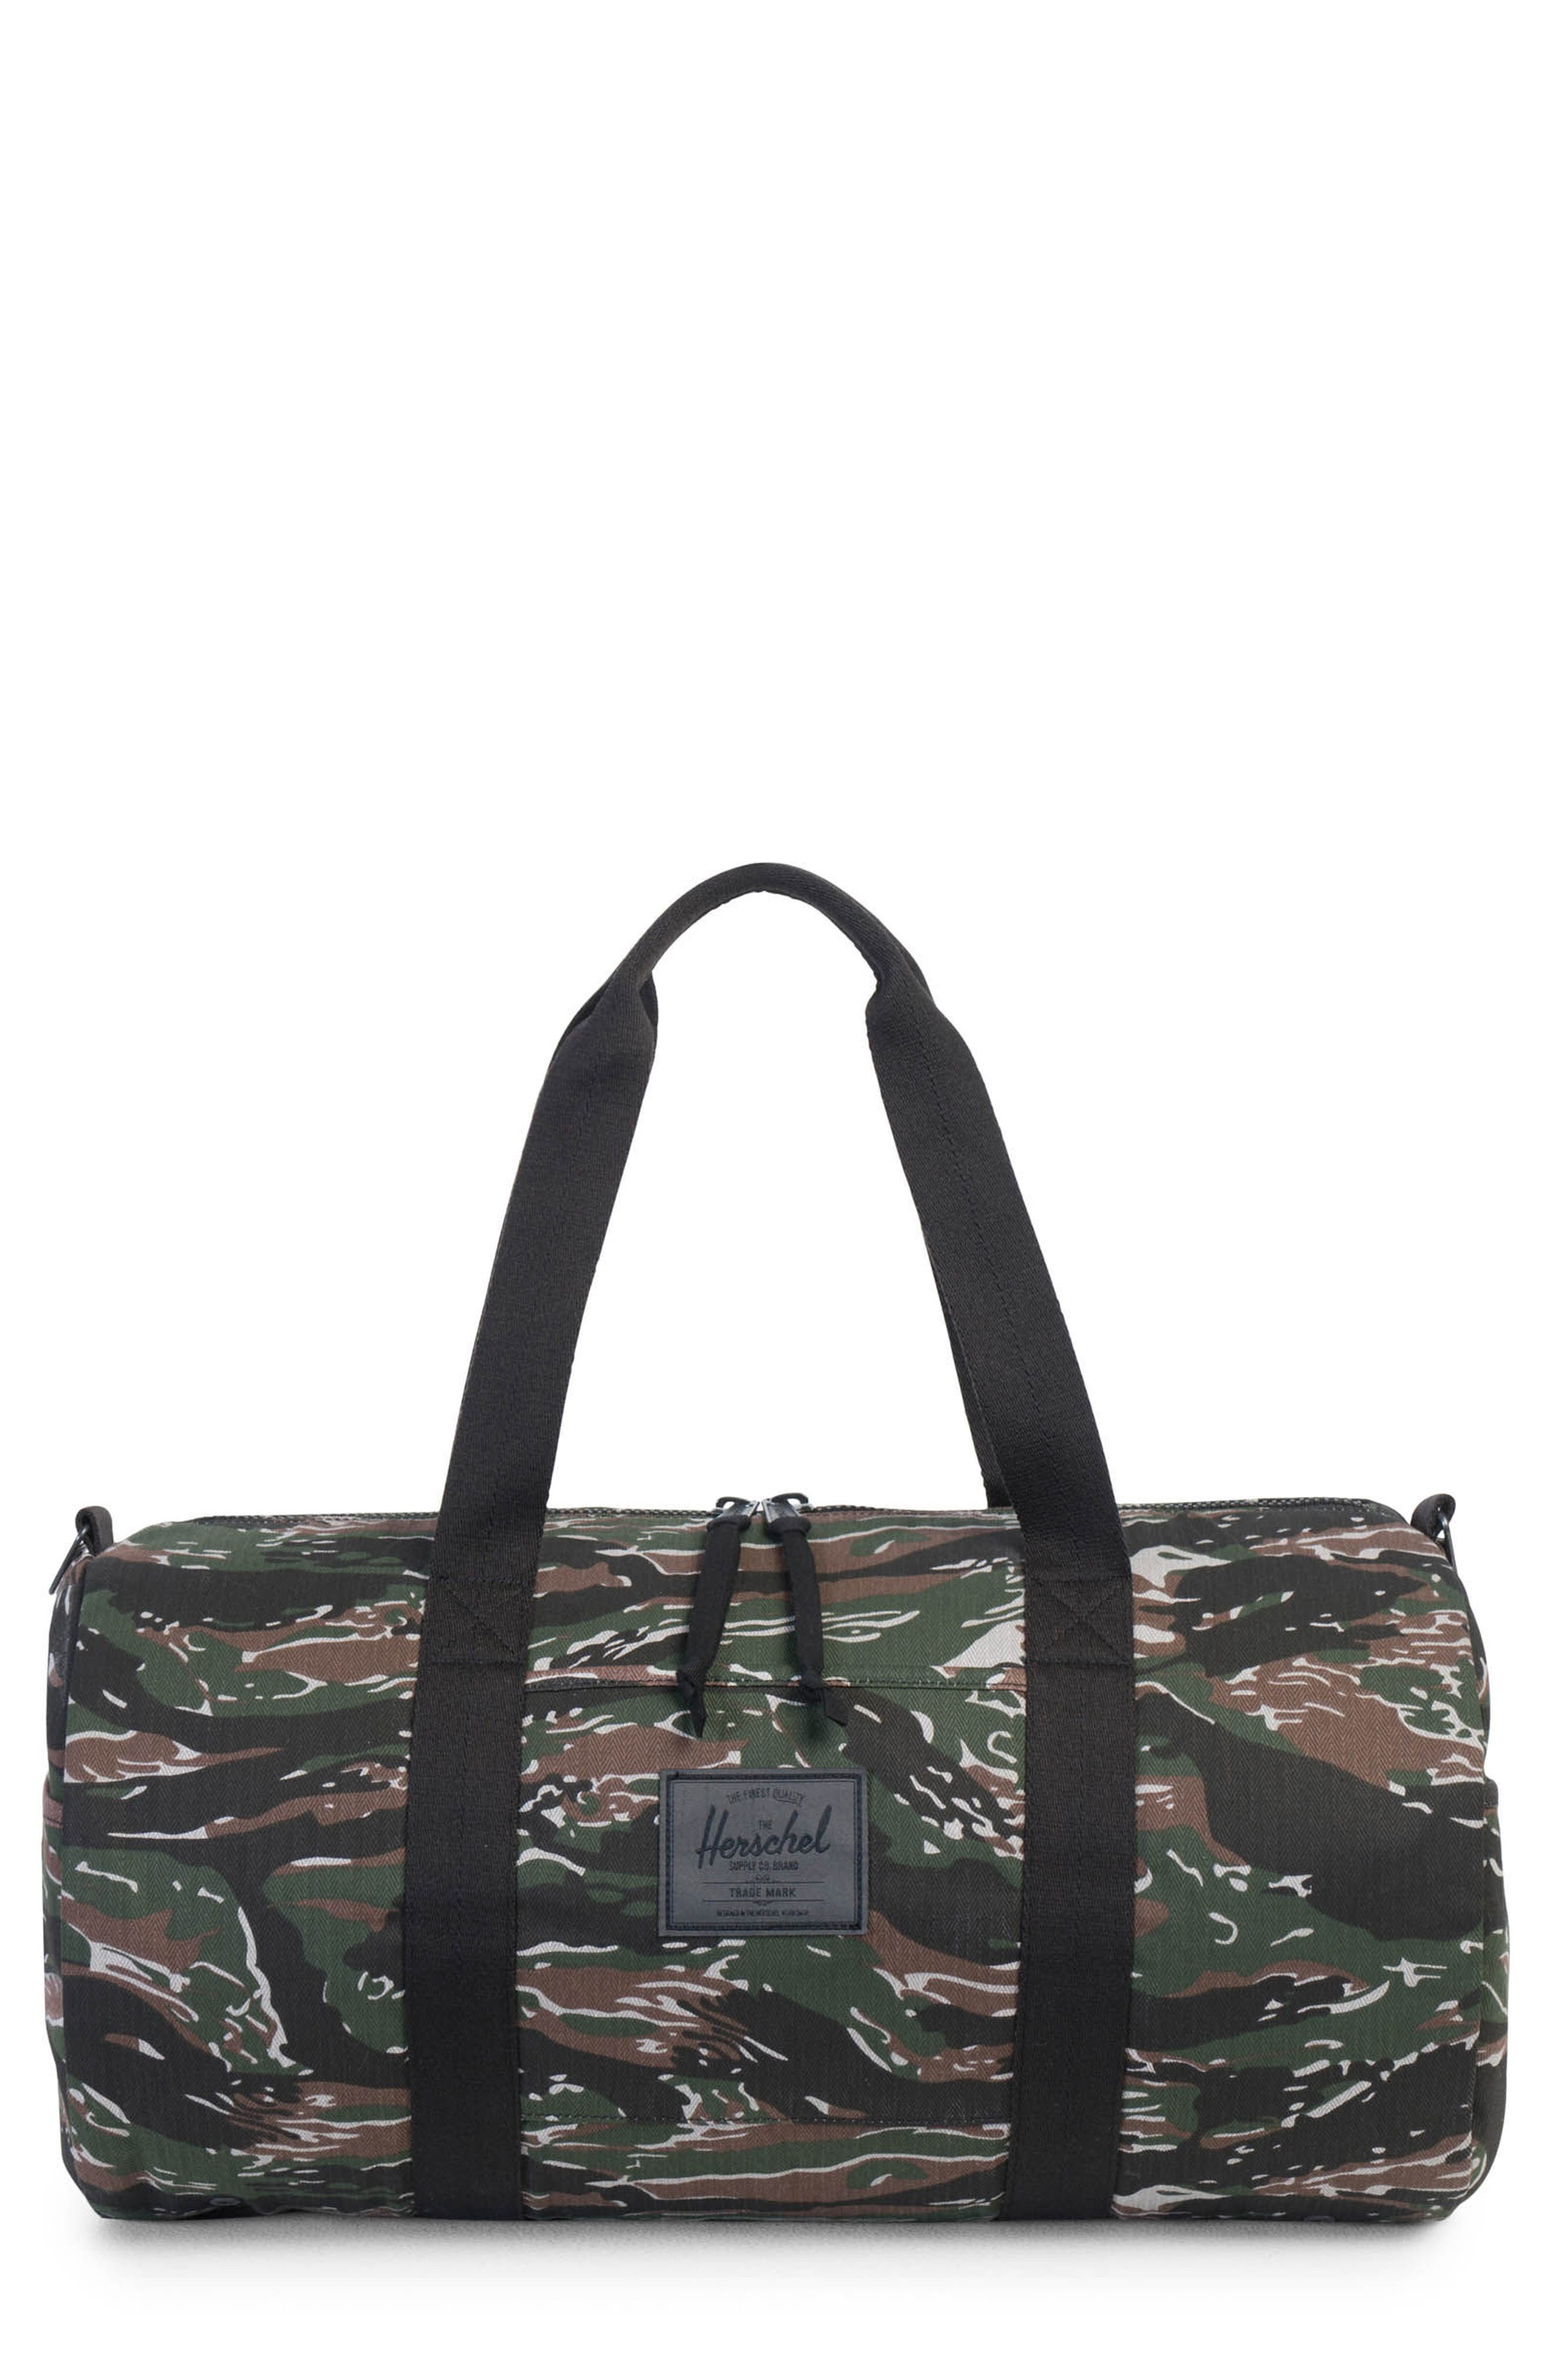 Main Image - Herschel Supply Co. Sutton Surplus Duffel Bag